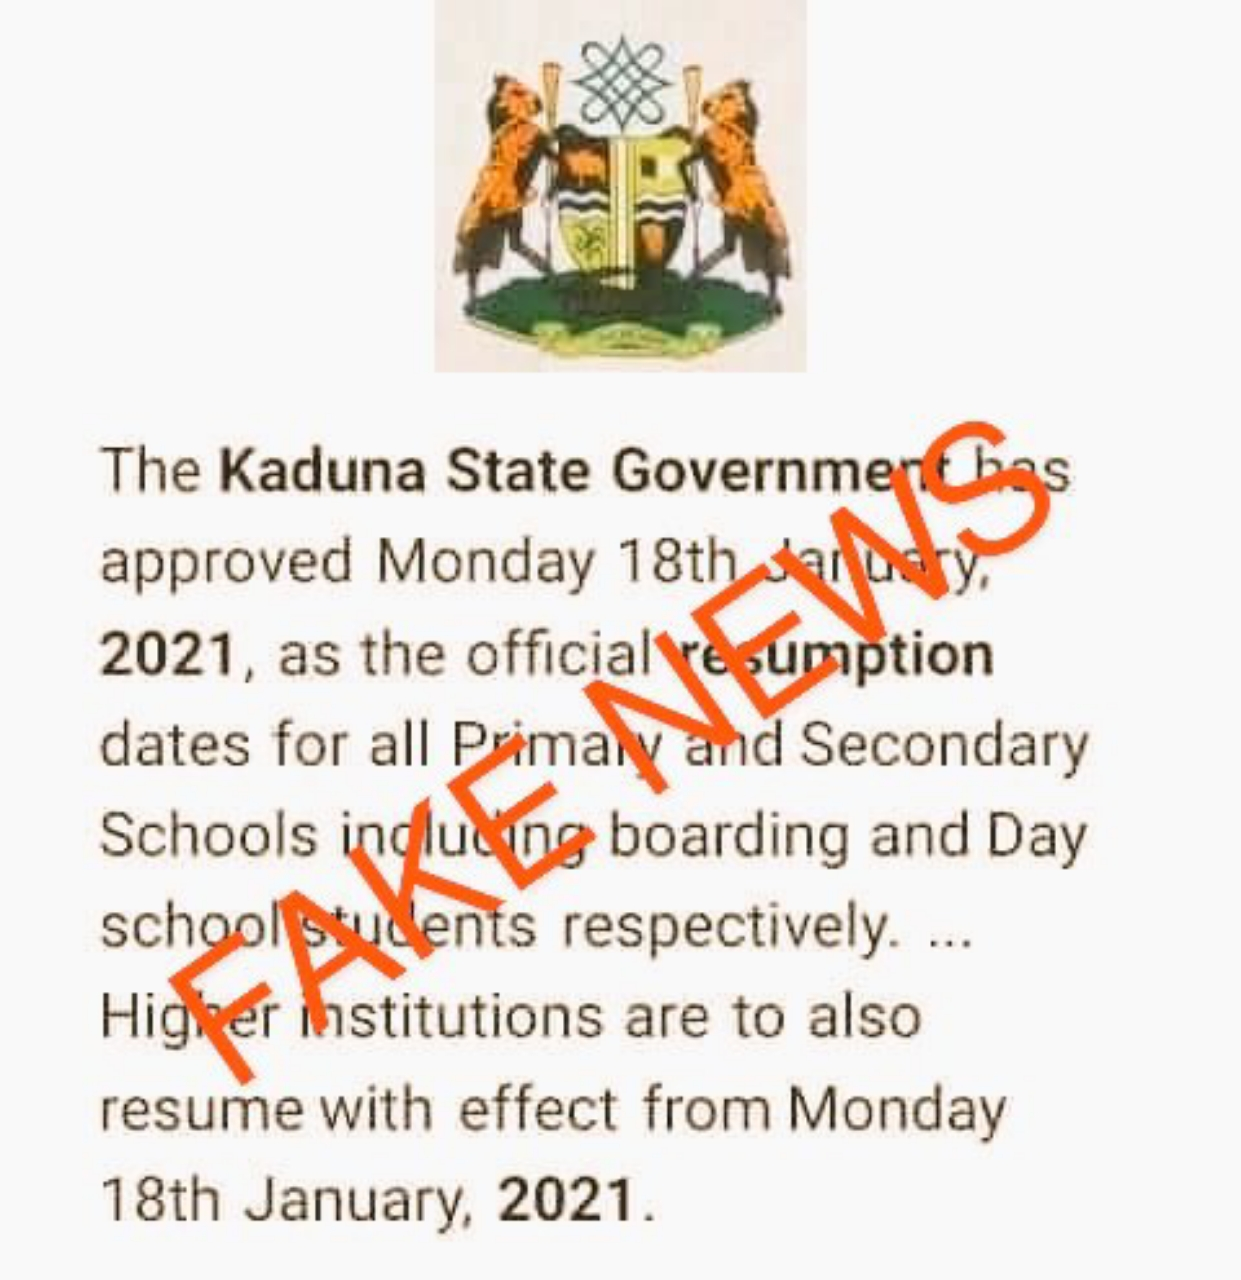 Schools in Kaduna State  not resuming on 18th January